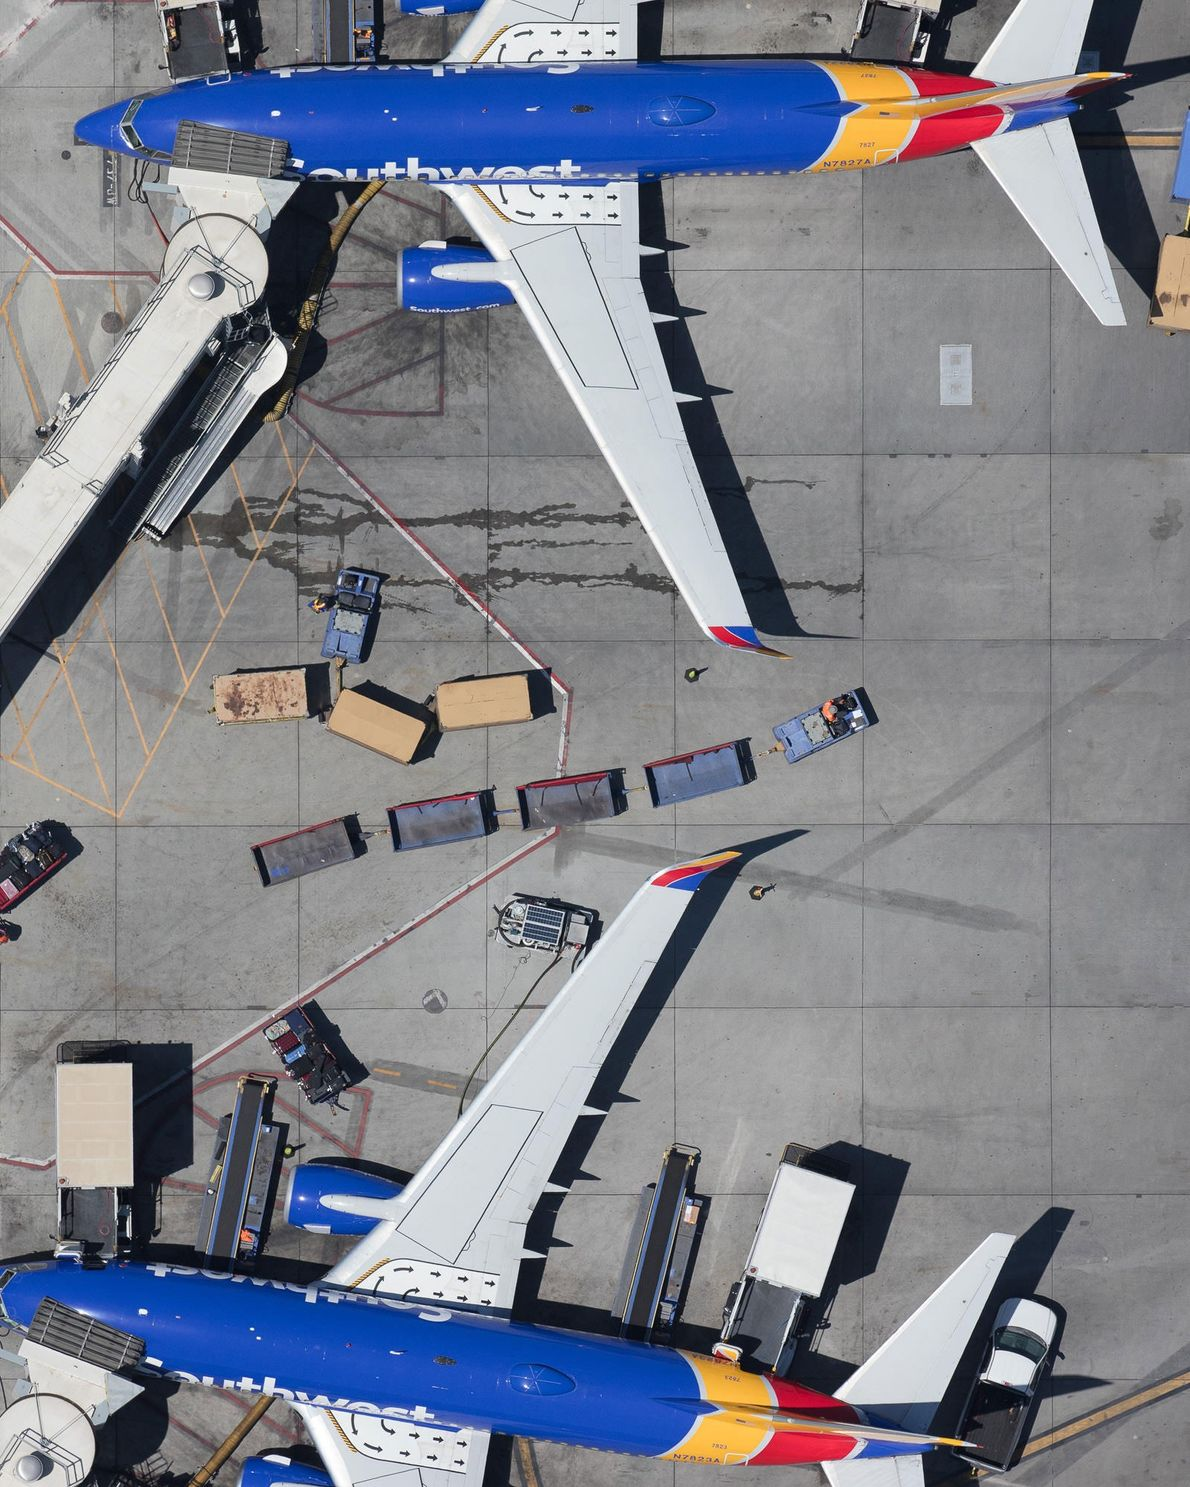 Boeing 737s, operated by Southwest, wait at Terminal 1 at LAX.